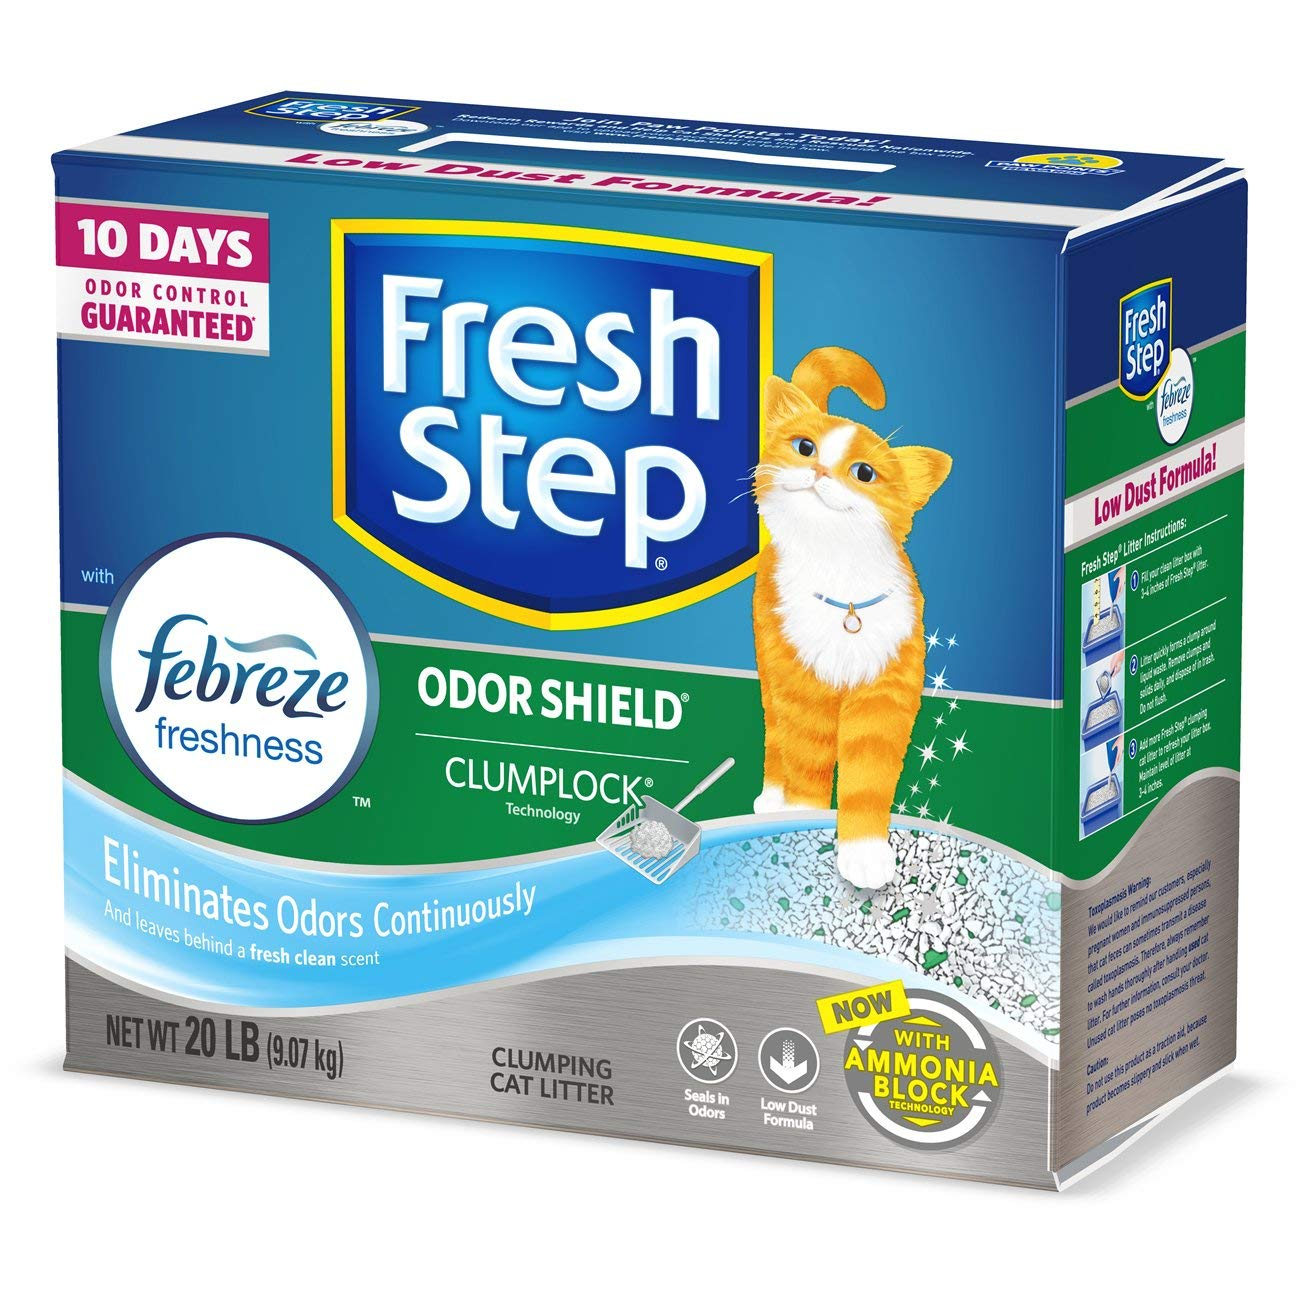 Fresh Step with Febreze Freshness Cat Litter